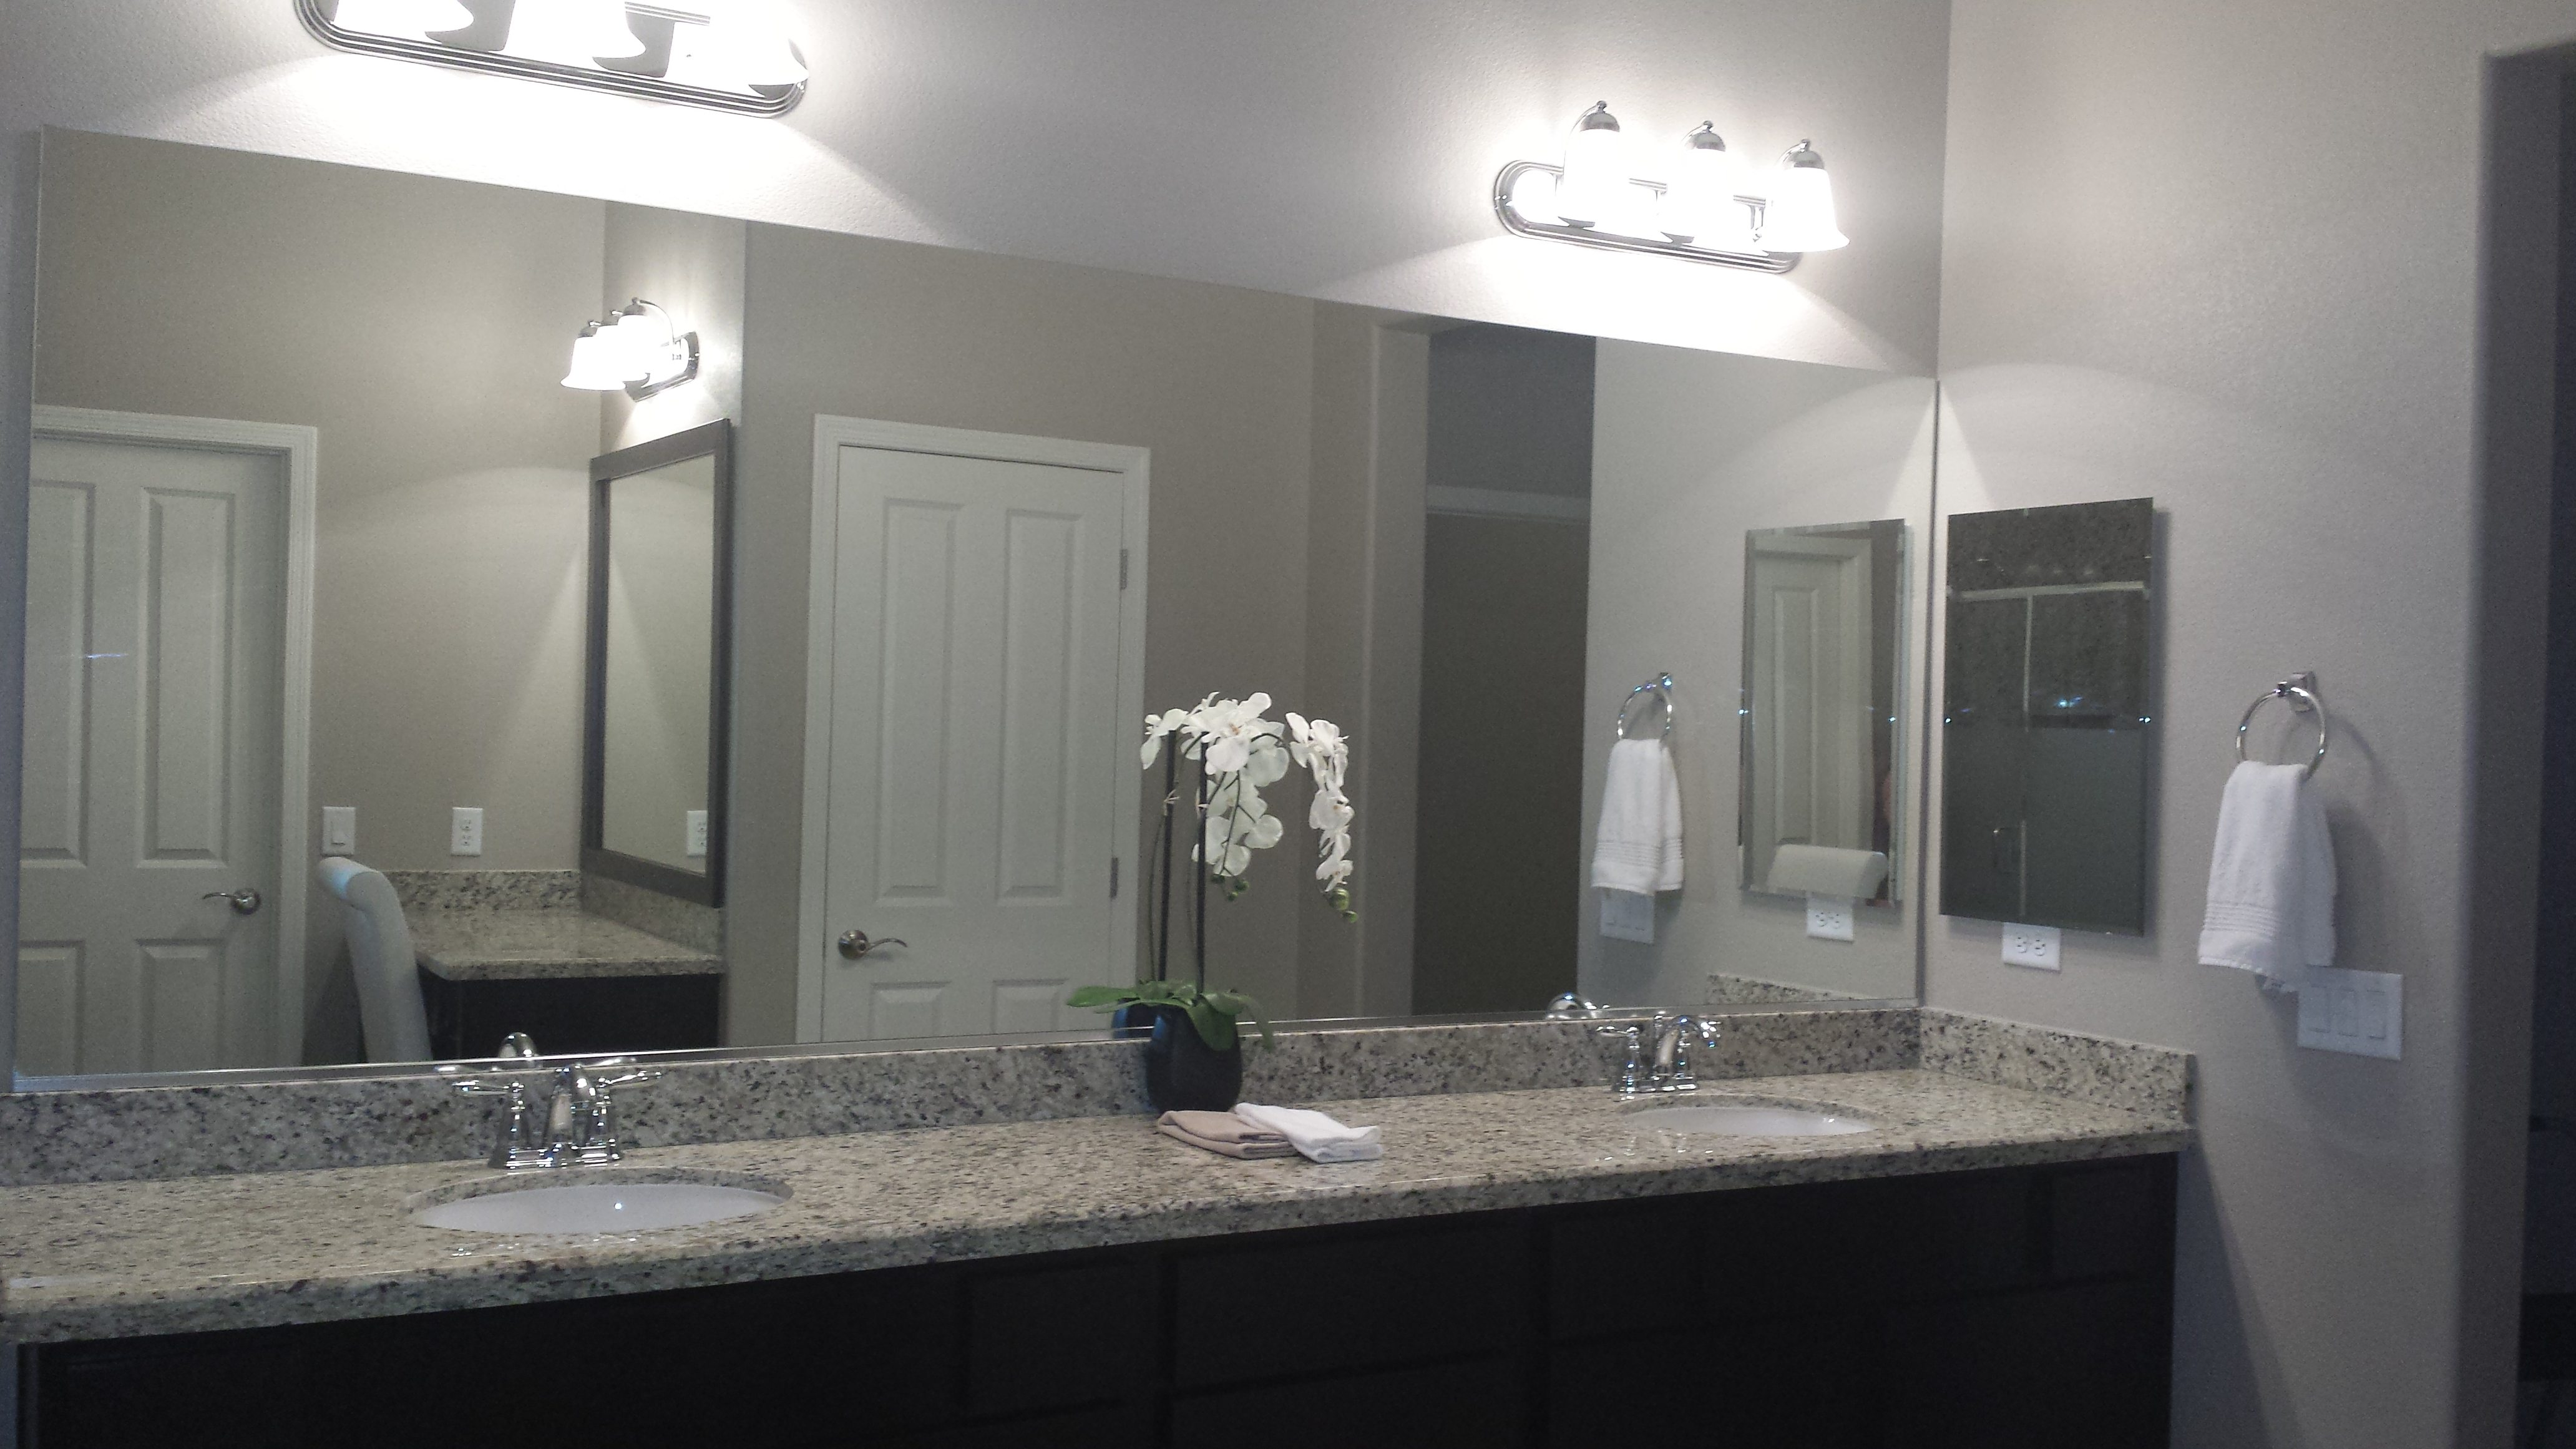 Broken Bathroom Mirror Before And After Customer Bathroom In Las Vegas Frame